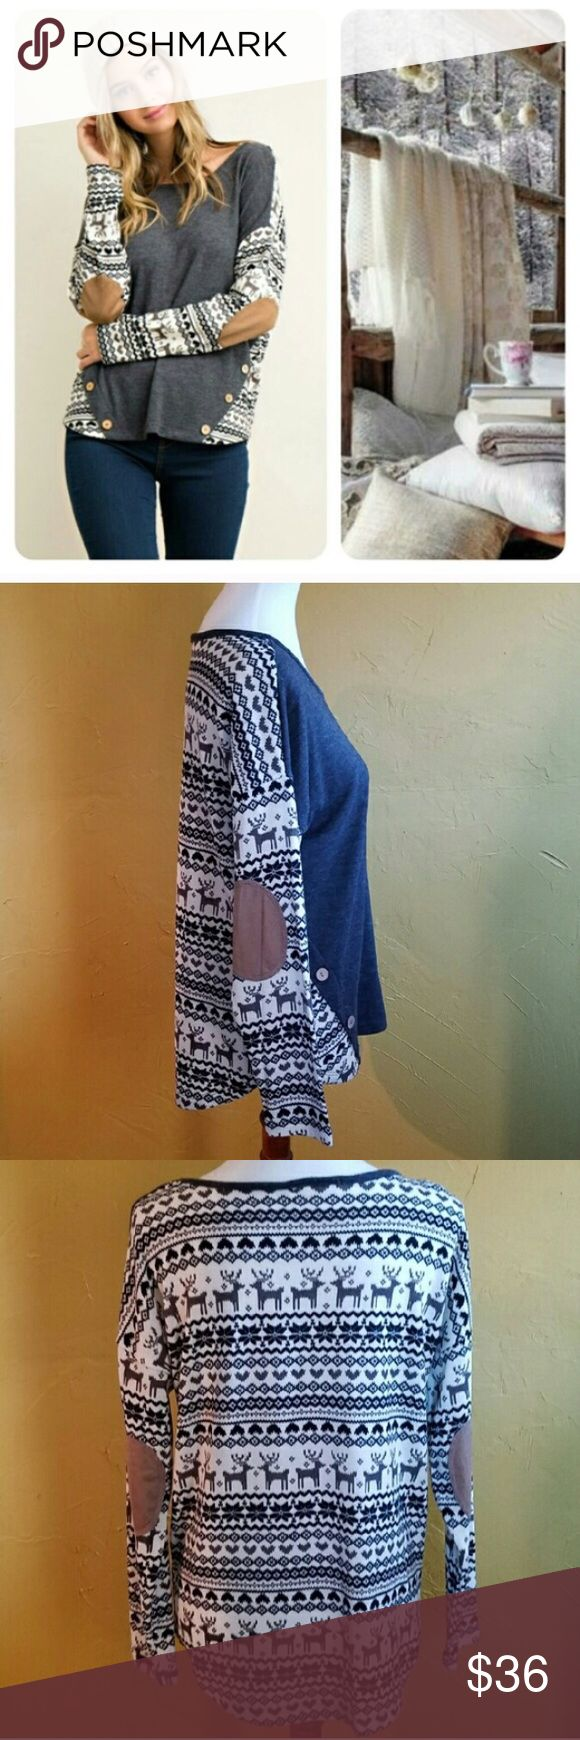 Entro Nordic Print Elbow Patch Pullover Charcoal with white, grey, and black print contrast . Suede elbow patches . Button detail front . Round hem . Knit . 79% polyester . 18% rayon . 3% spandex . Fits true to size . Price is FIRM.  #123120 Entro Tops Tees - Long Sleeve